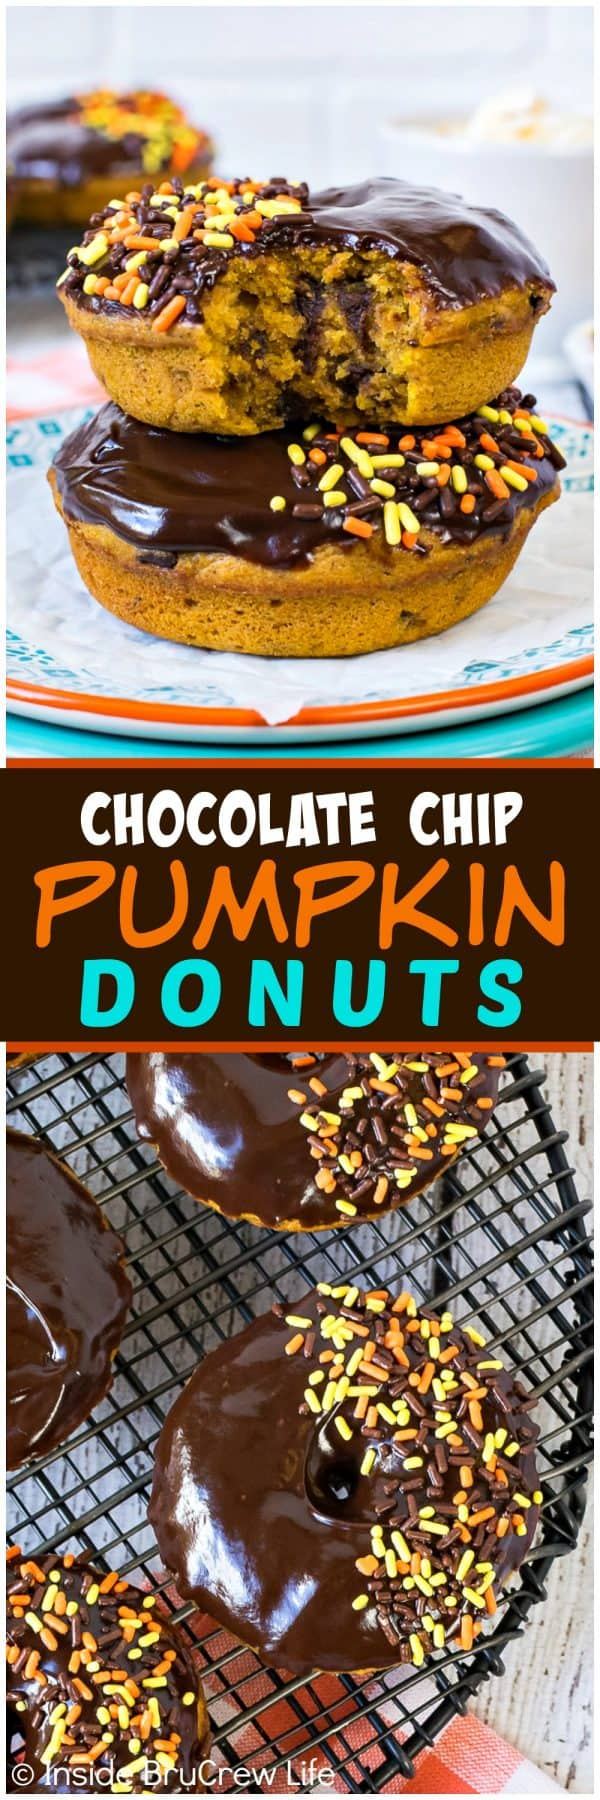 Chocolate Chip Pumpkin Donuts - these soft dense pumpkin donuts are loaded with chocolate goodness on top and inside. Great fall recipe for breakfast or after school snacks.